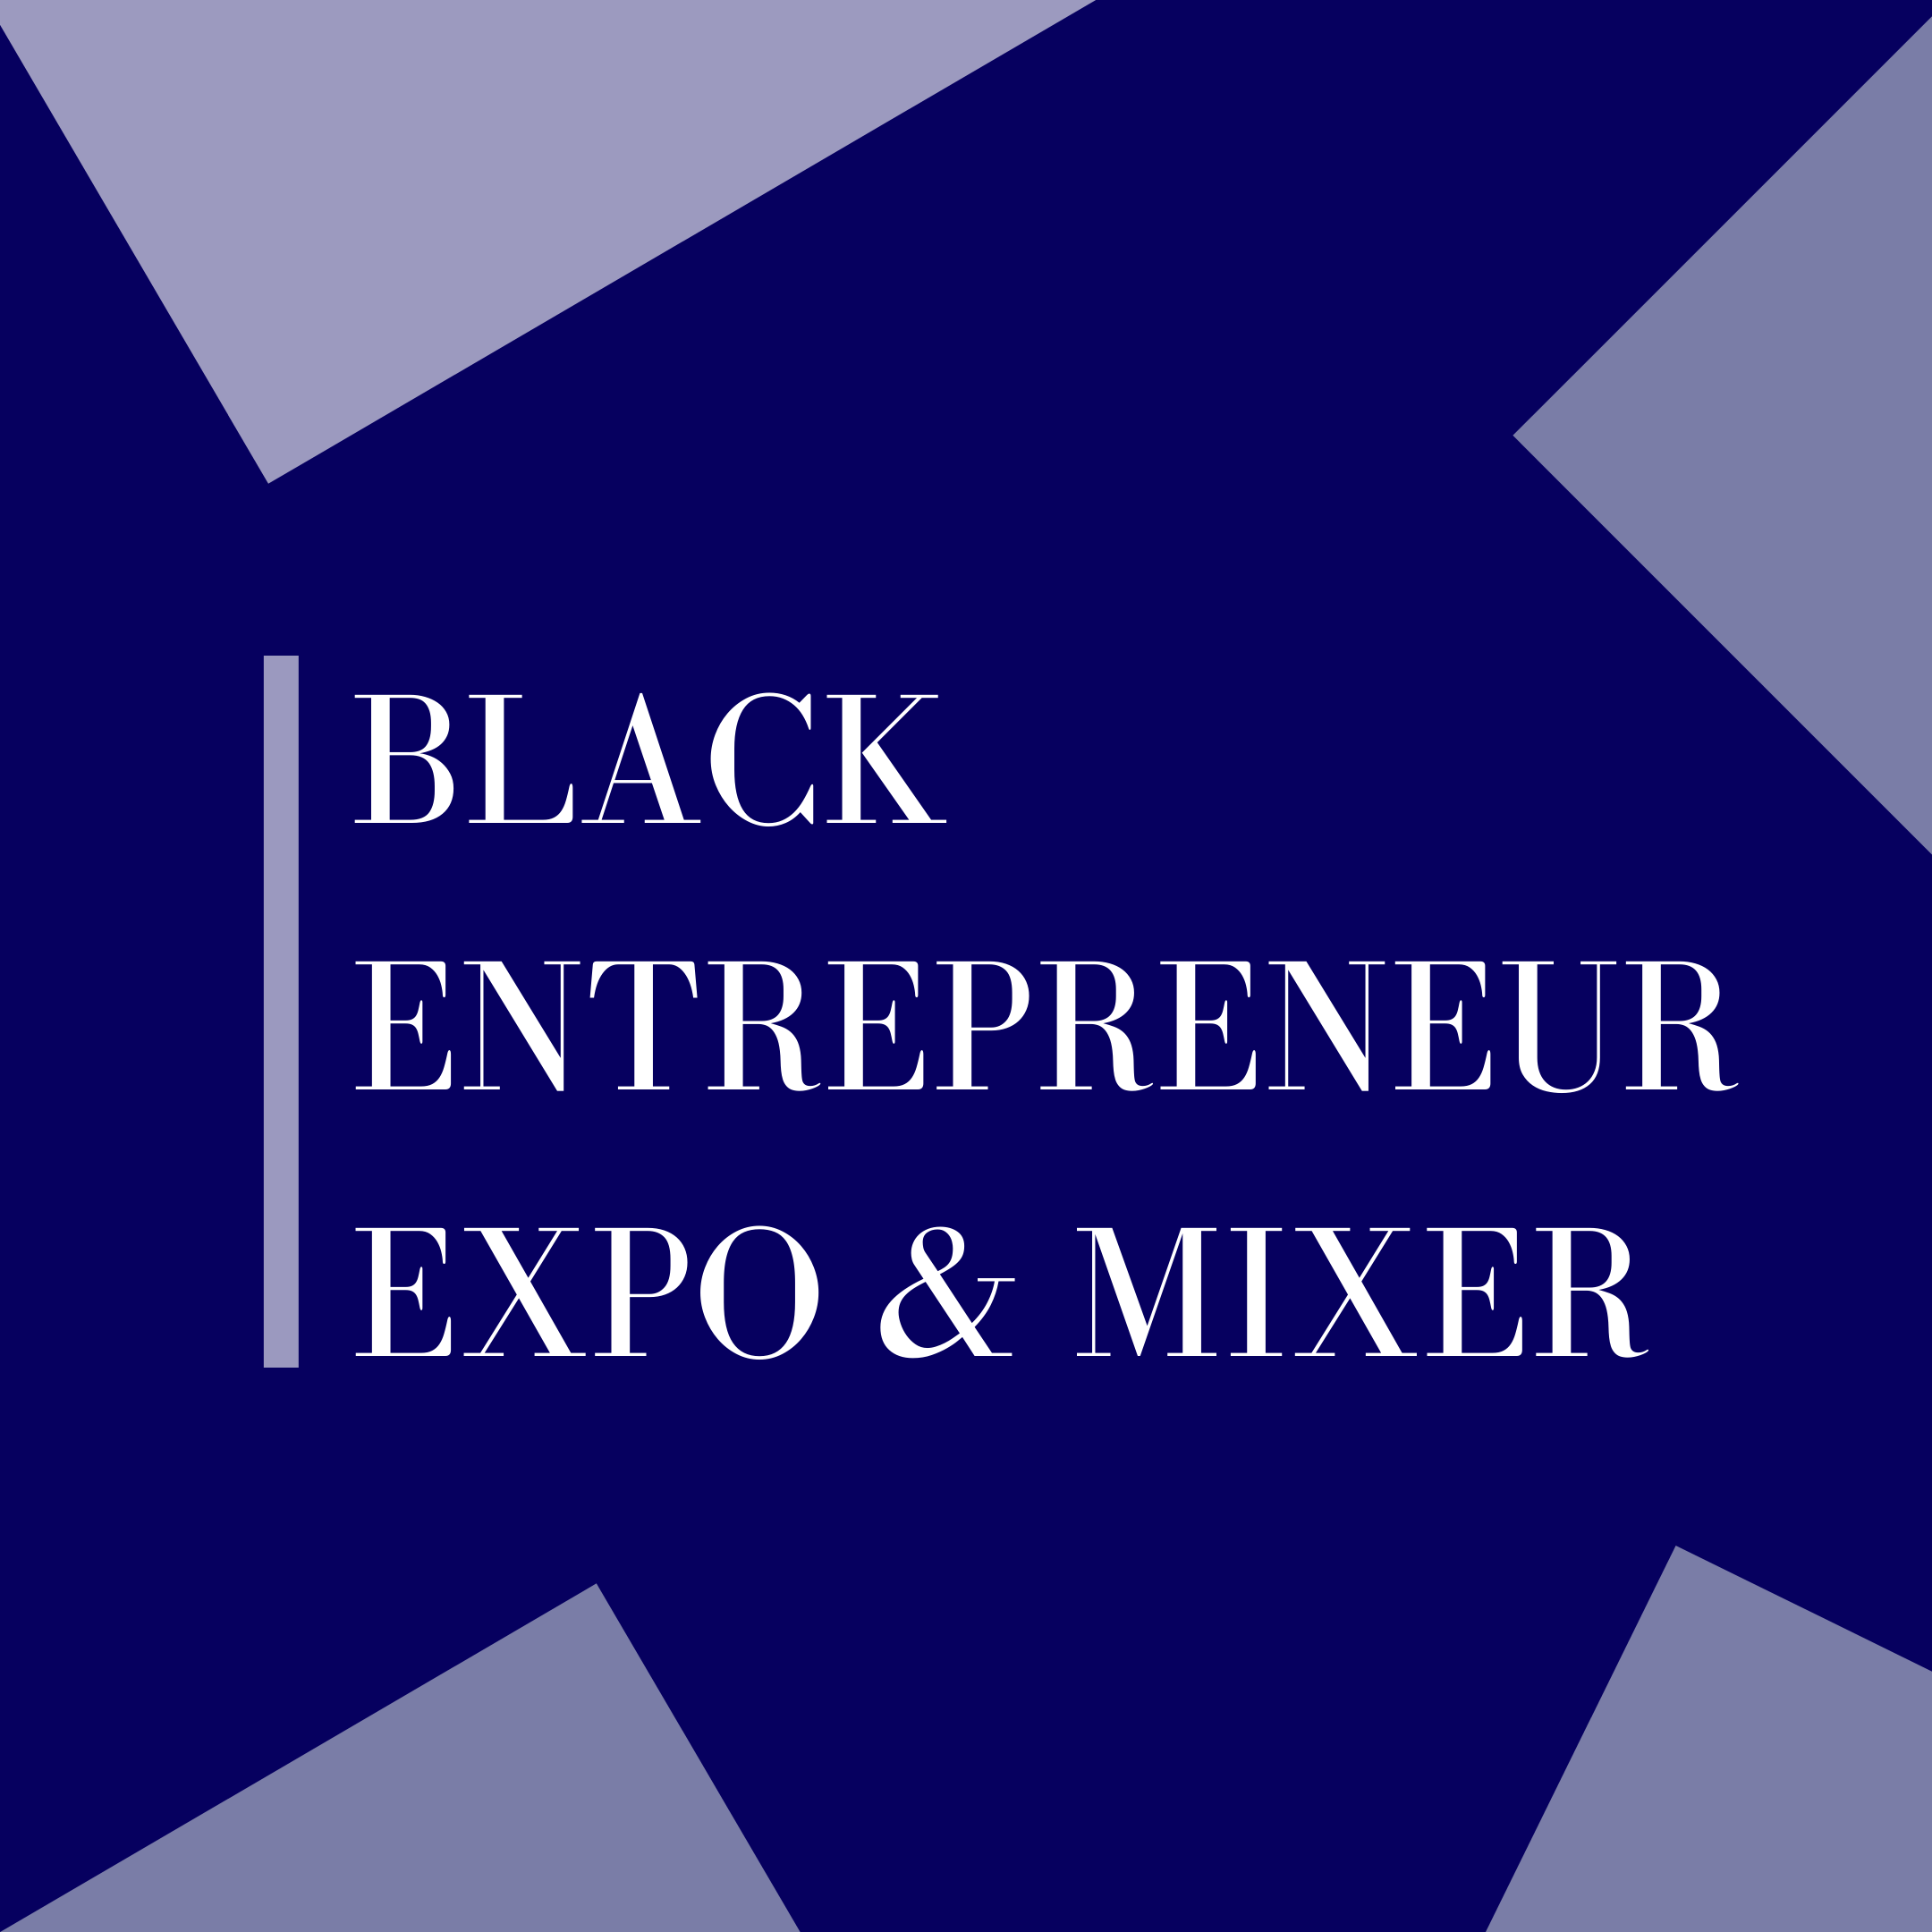 The Ashe Academy Black Entrepreneur Expo & Mixer Watts Coffee House